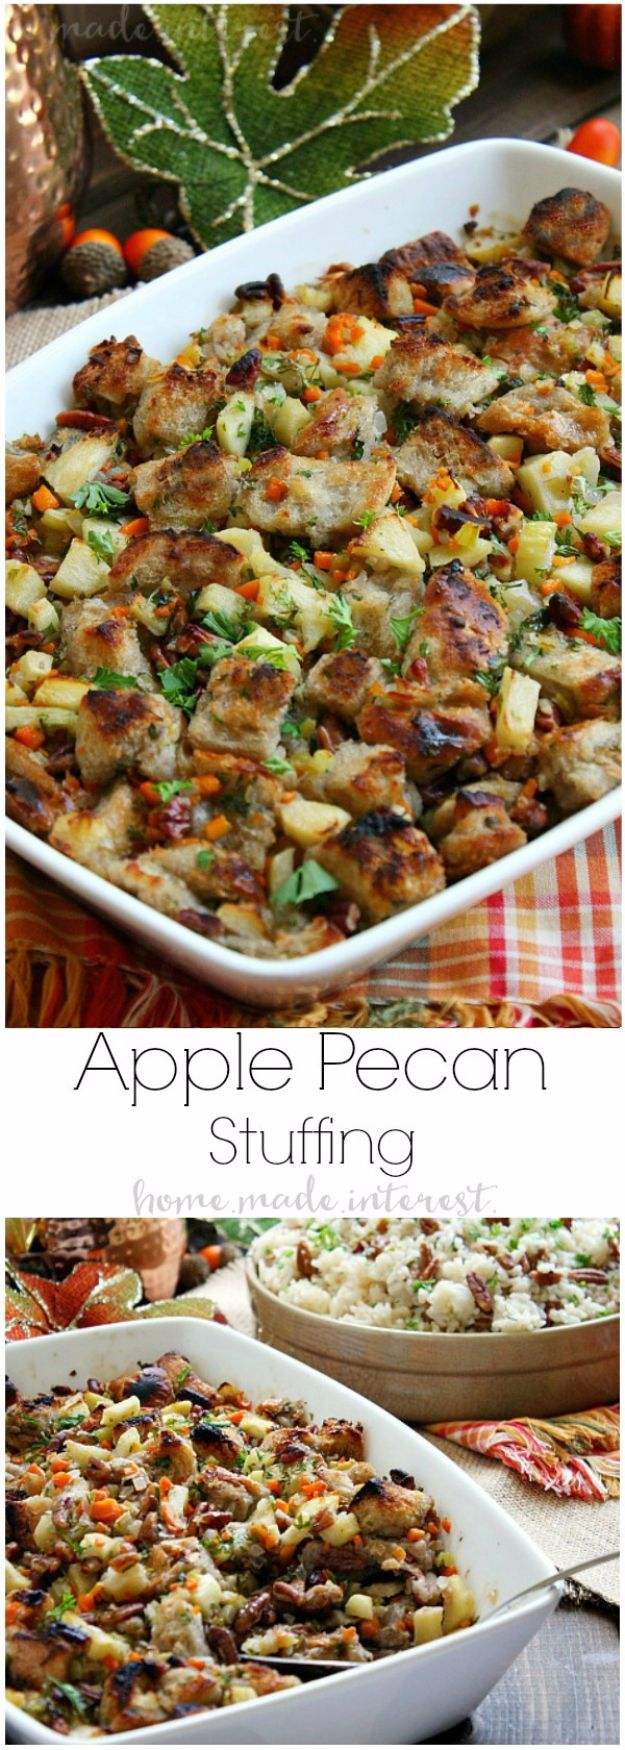 Healthy Thanksgiving Recipes - Apple Pecan Stuffing - Low fat Versions of Your Favorite Holiday Recipe for Turkey, Stuffing, Gravy, Pie and Desserts, Appetizers, Vegetables and Side Dishes like Spinach, Broccoli, Cranberries, Mashed Potatoes, Sweet Potatoes and Green Beans - Easy and Quick Last Minute Thanksgiving Recipes for Low Carb, Low Fat and Clean Eating Diet